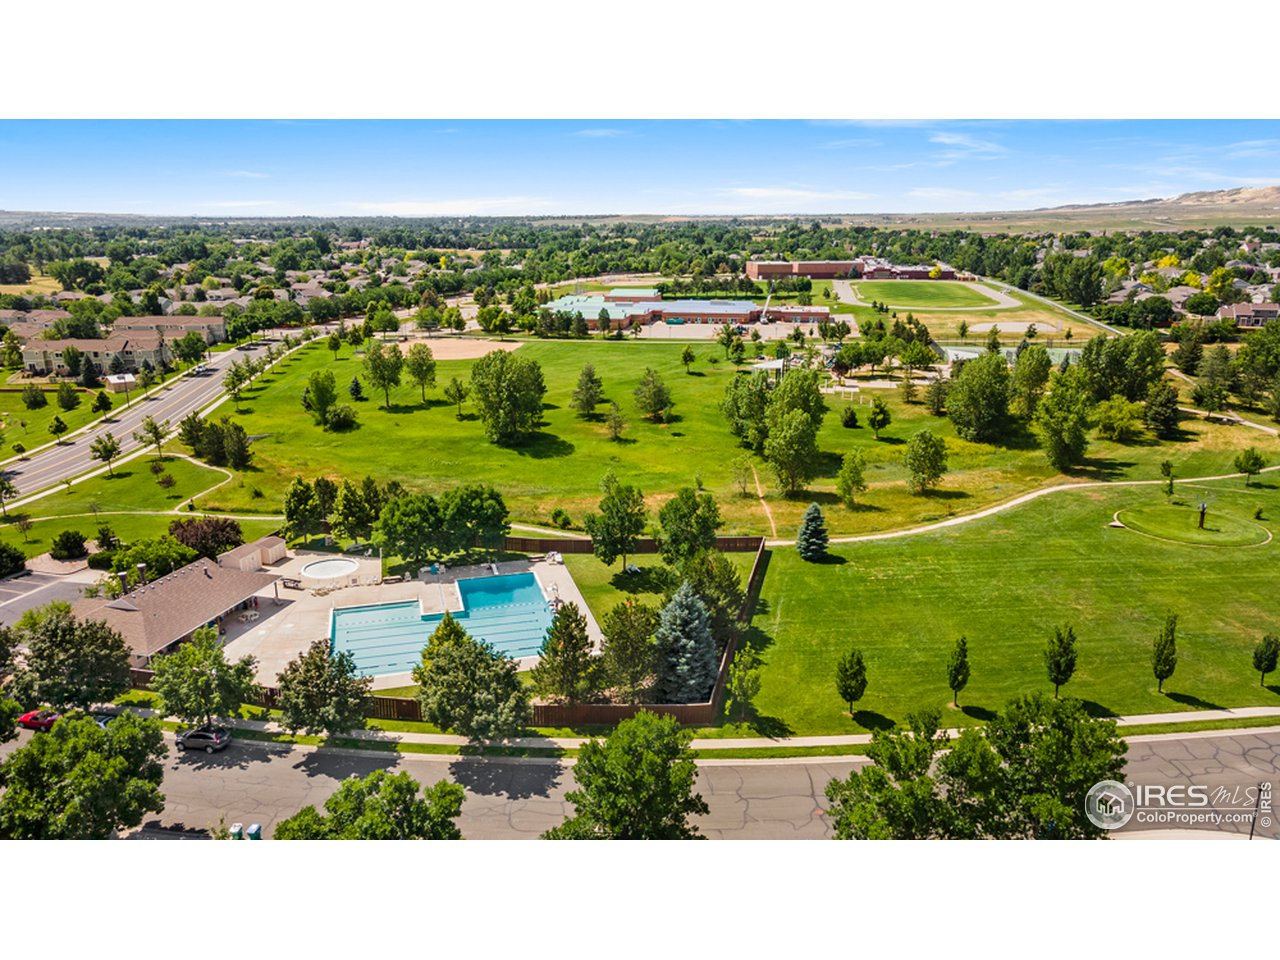 Enjoy all the great amenities this sought after neighborhood has to offer!